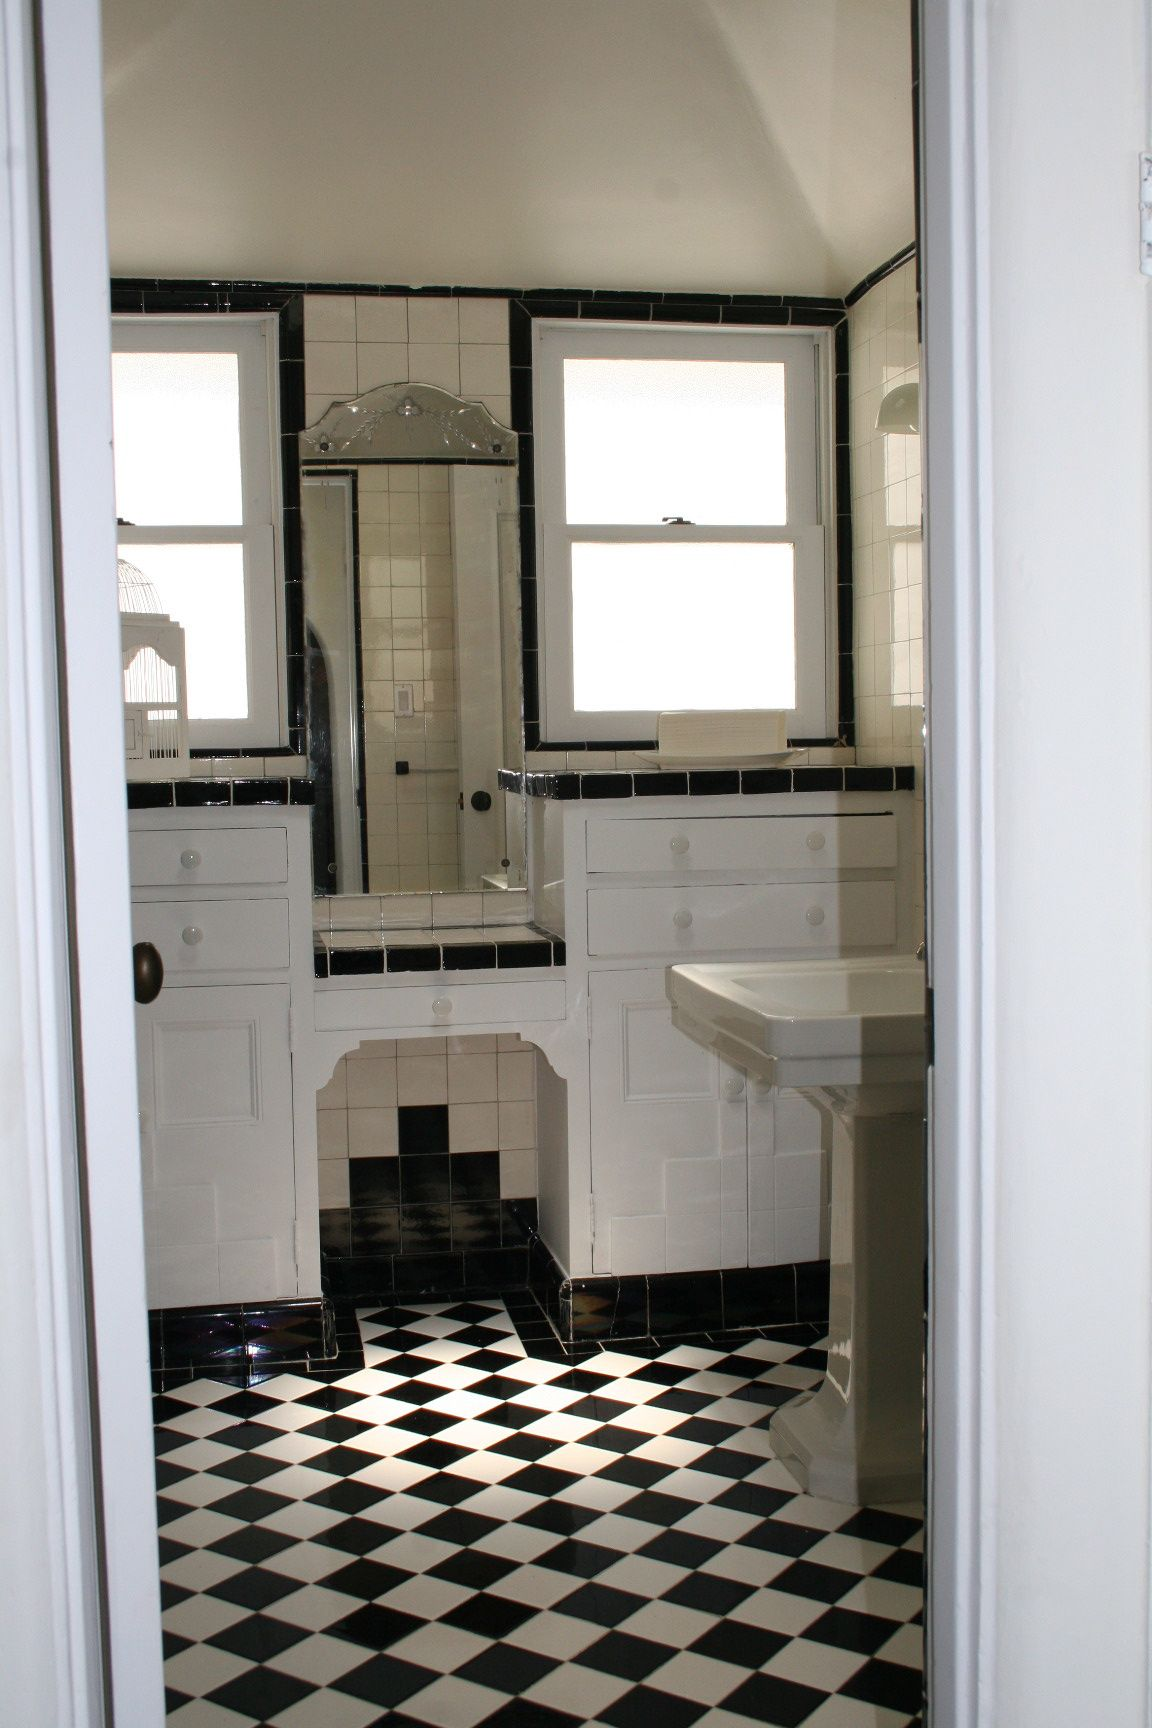 Modern Art Deco Bathrooms Restored Tile Bathroom In A 1920s Spanish Home In The Hollywood